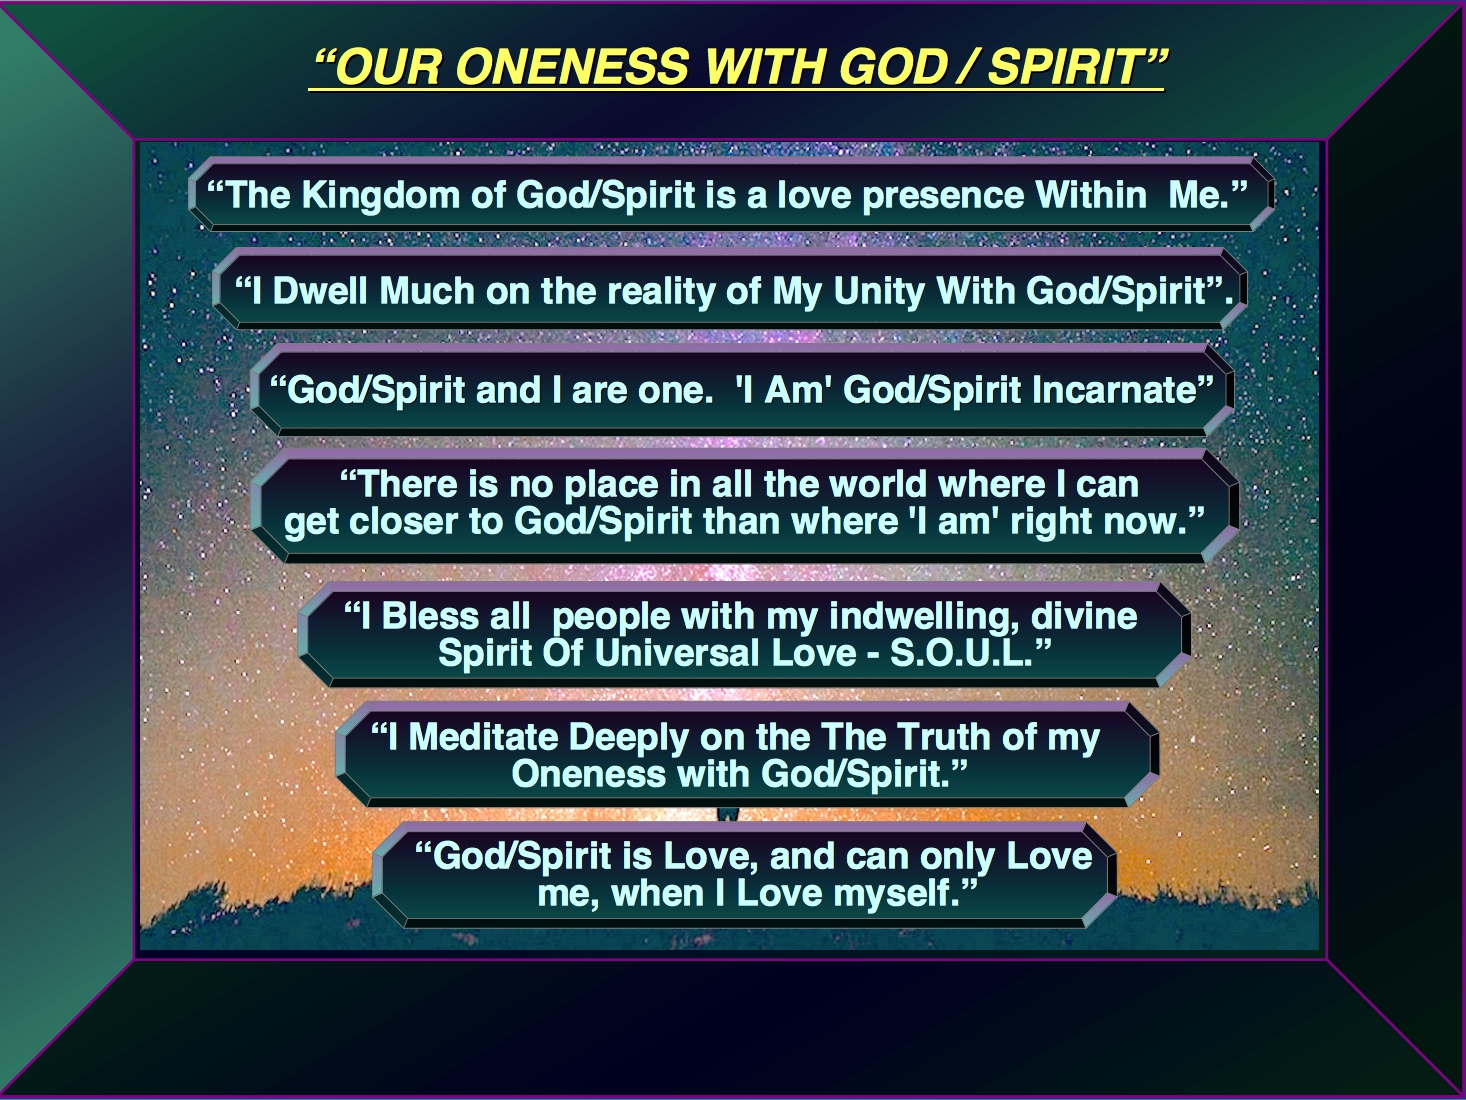 ============================================================PANEL GOD/SPIRIT WITHIN LOVE I AM S.O.U.L.=========================================================================PANEL GOD/SPIRIT WITHIN LOVE I AM S.O.U.L.